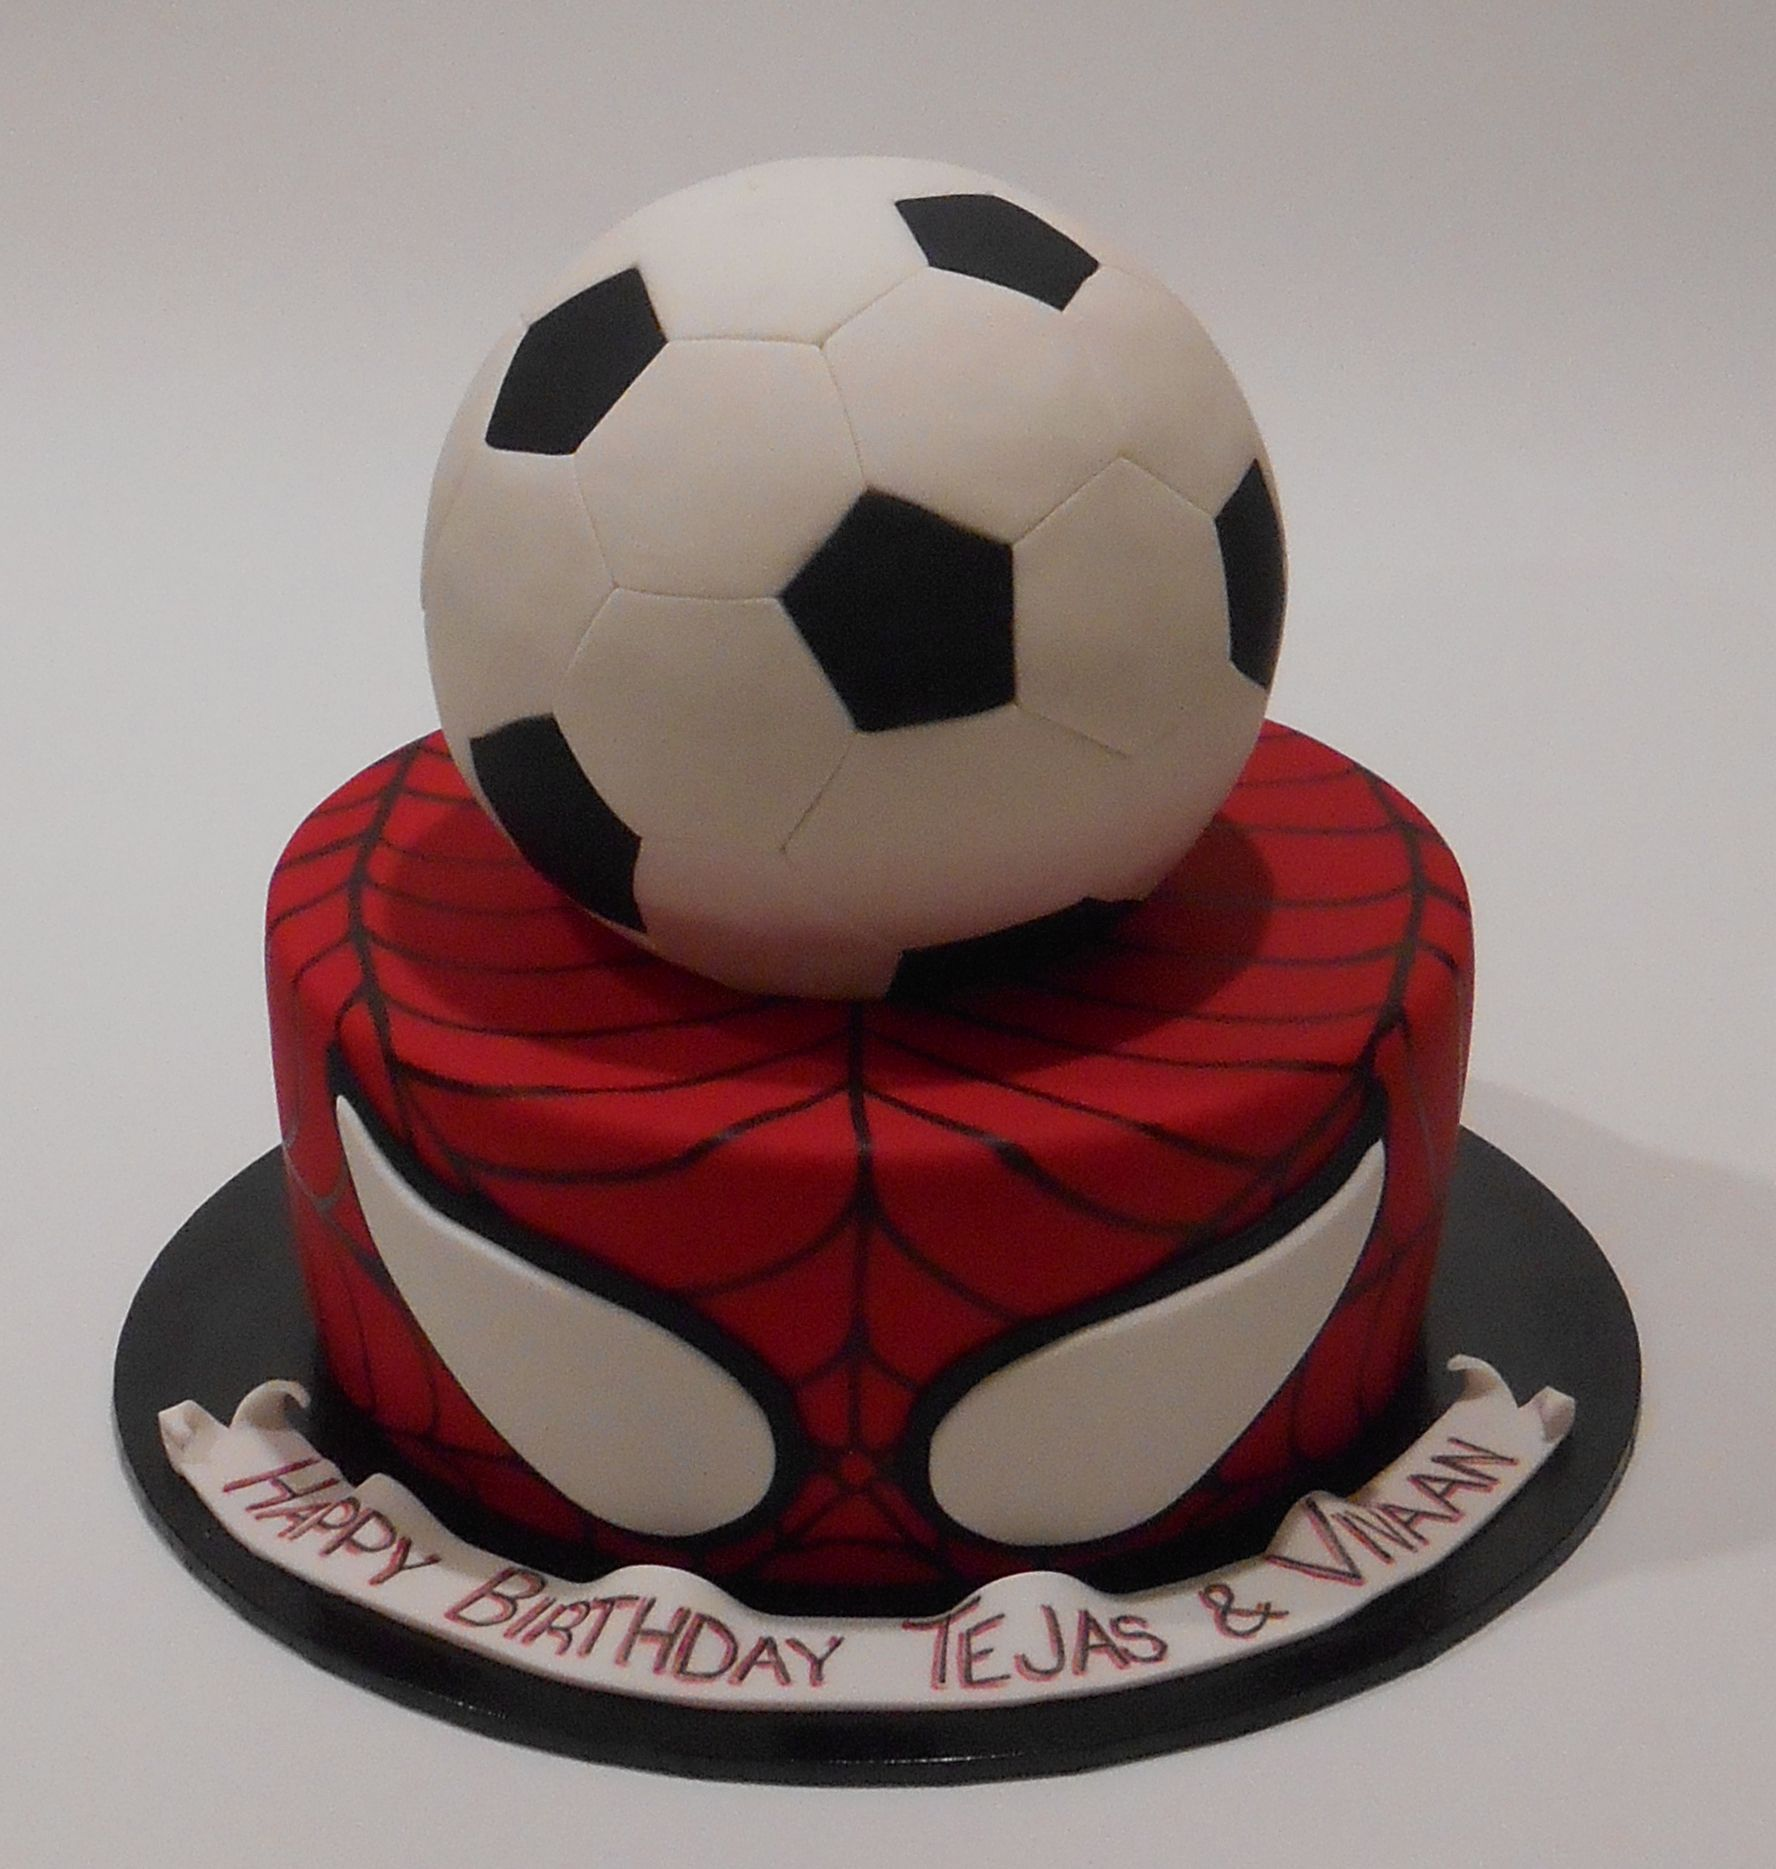 Soccer and Spiderman Themed Birthday Cake by Nadas Cakes